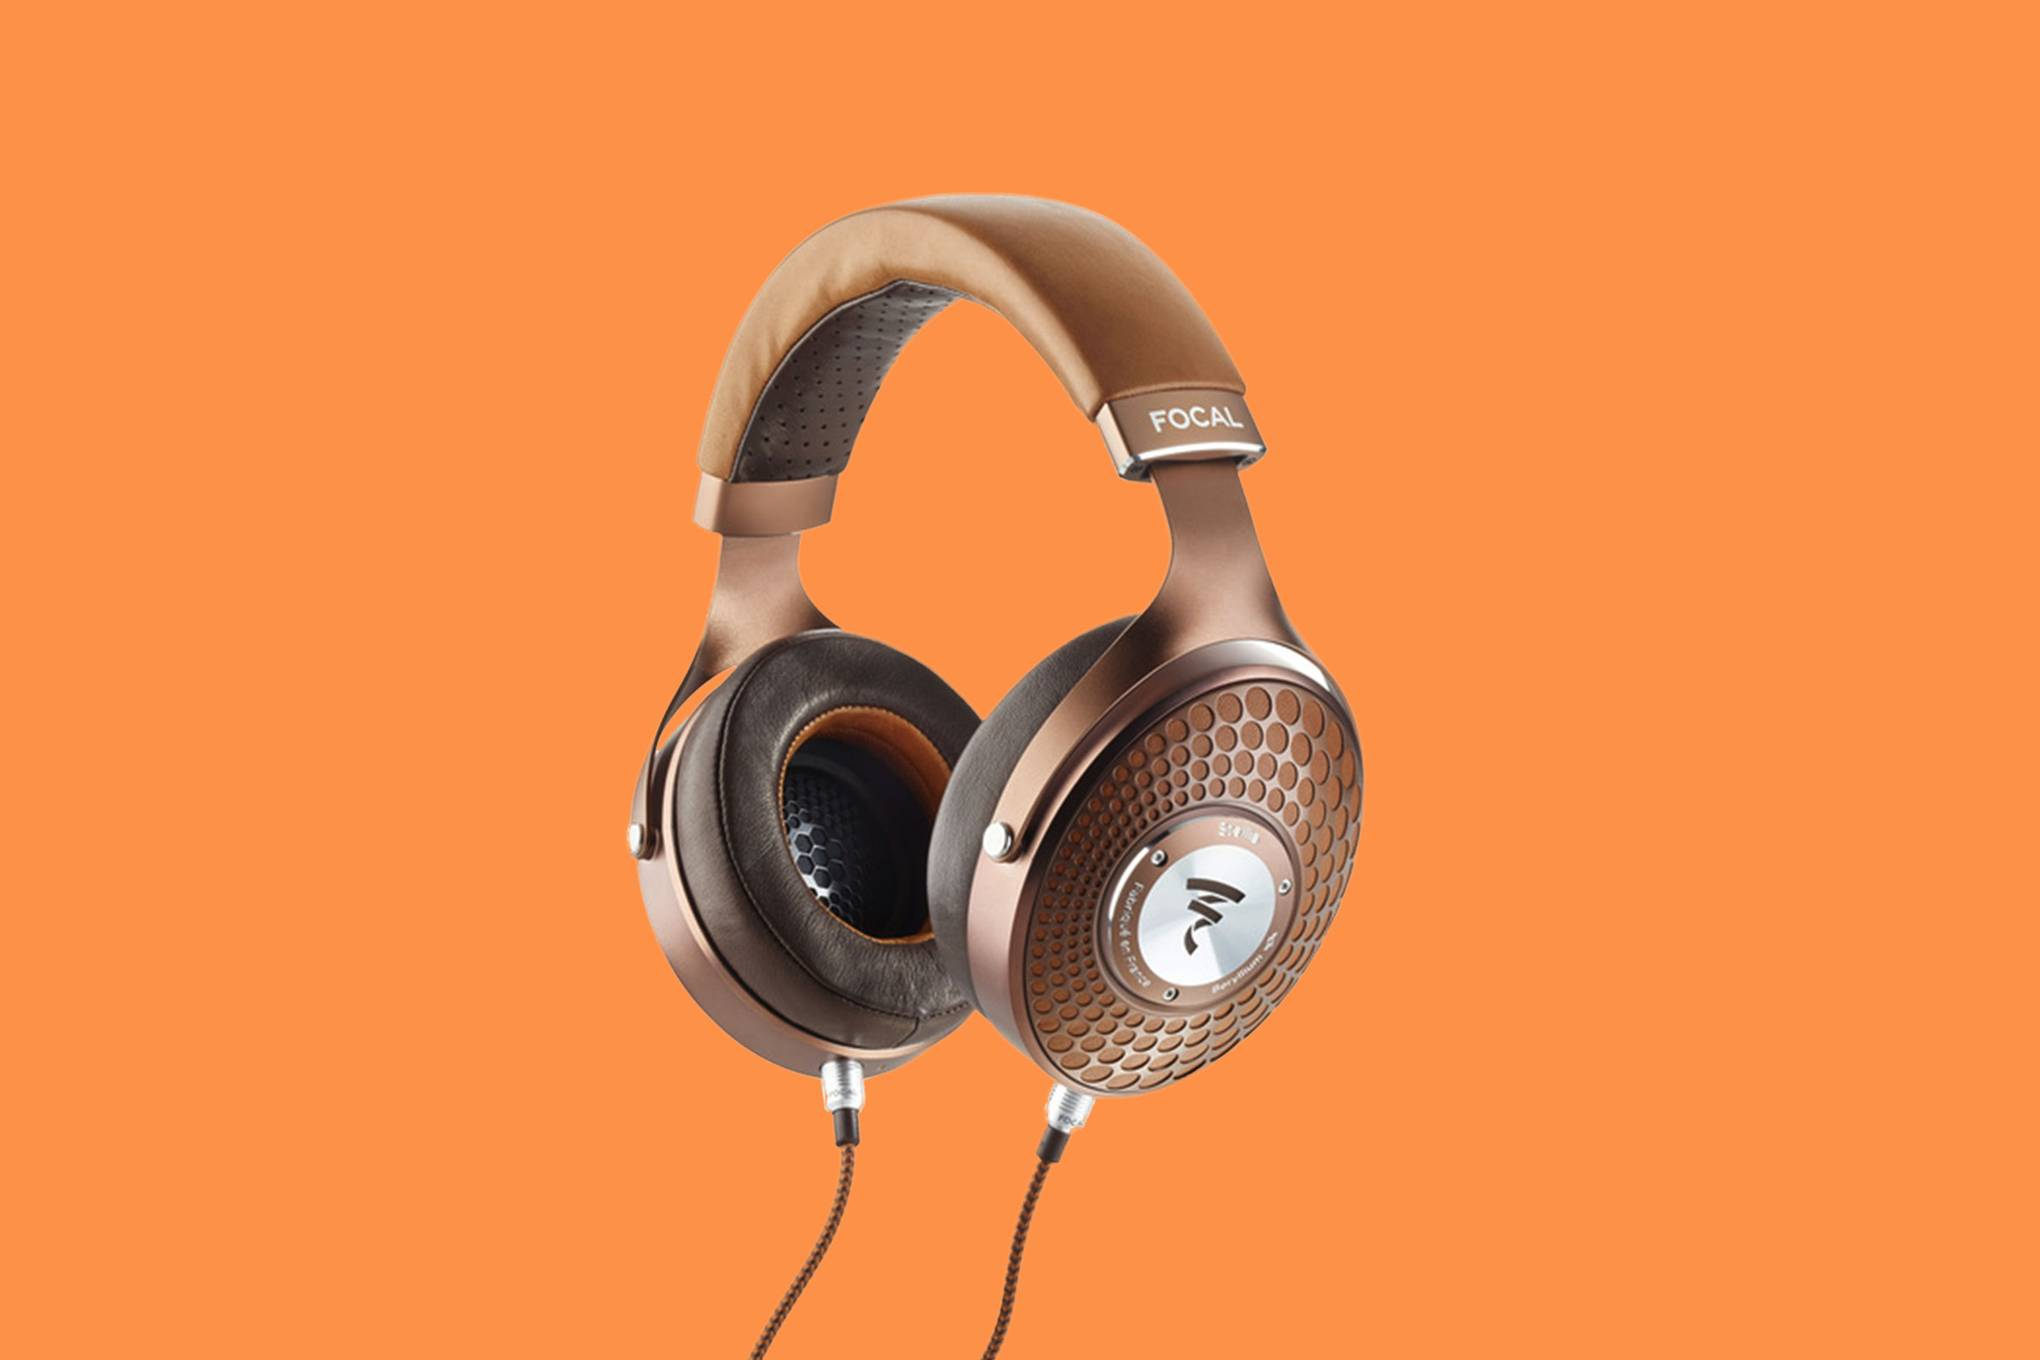 01f6adbb7431ea Focal's retro-styled headphones are an audiophile's dream | WIRED UK